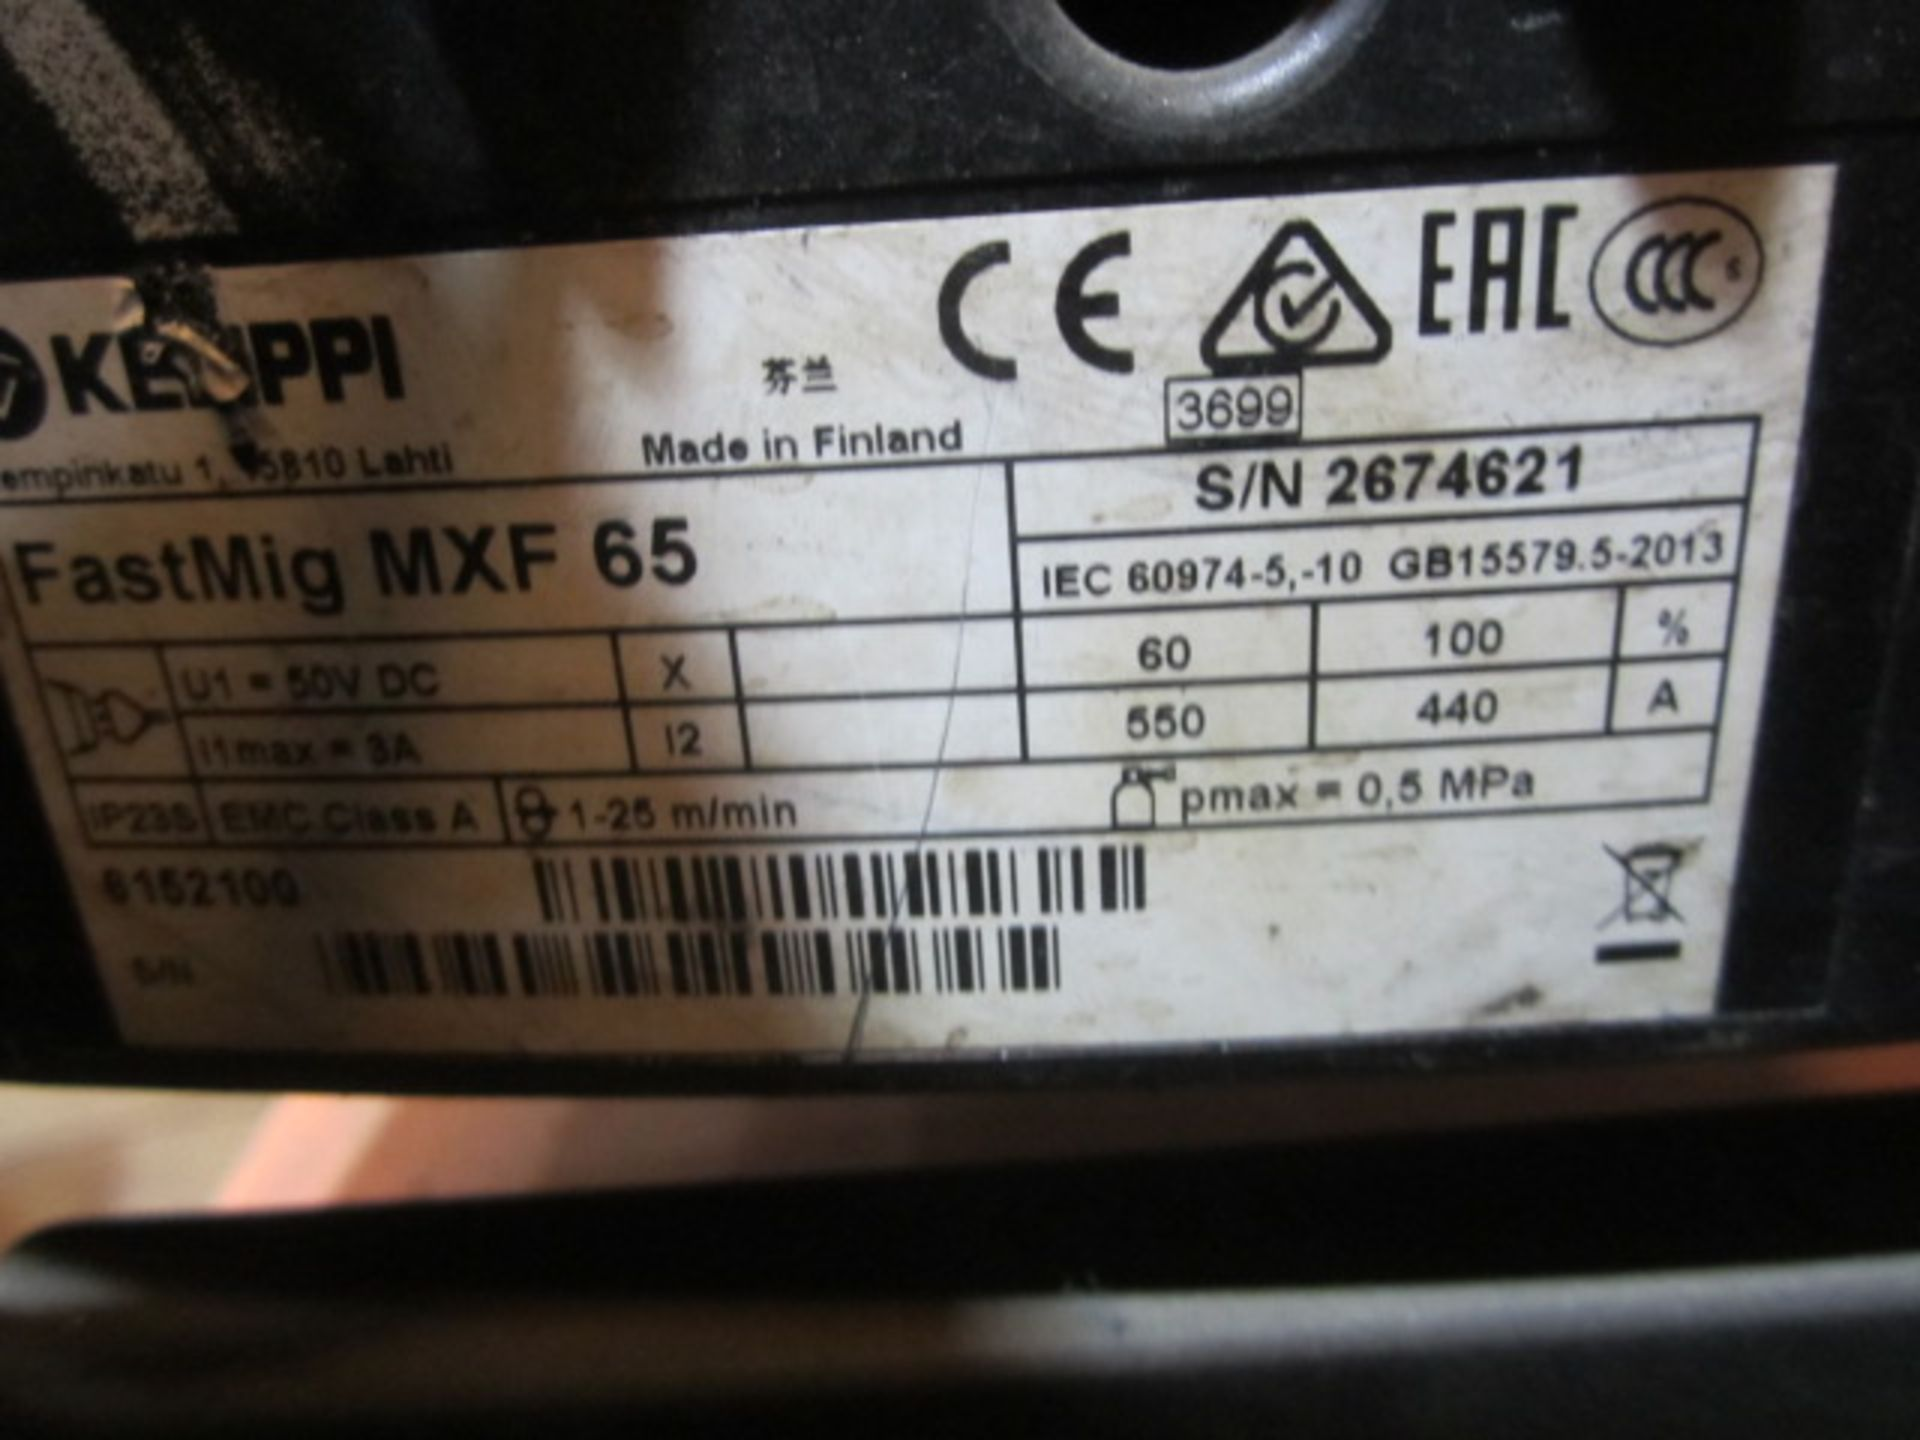 Kemppi Fast Mig M420 mig welder, serial no. 2674278, with Fast Mig MXF65 wire feeder, serial no. - Image 6 of 7